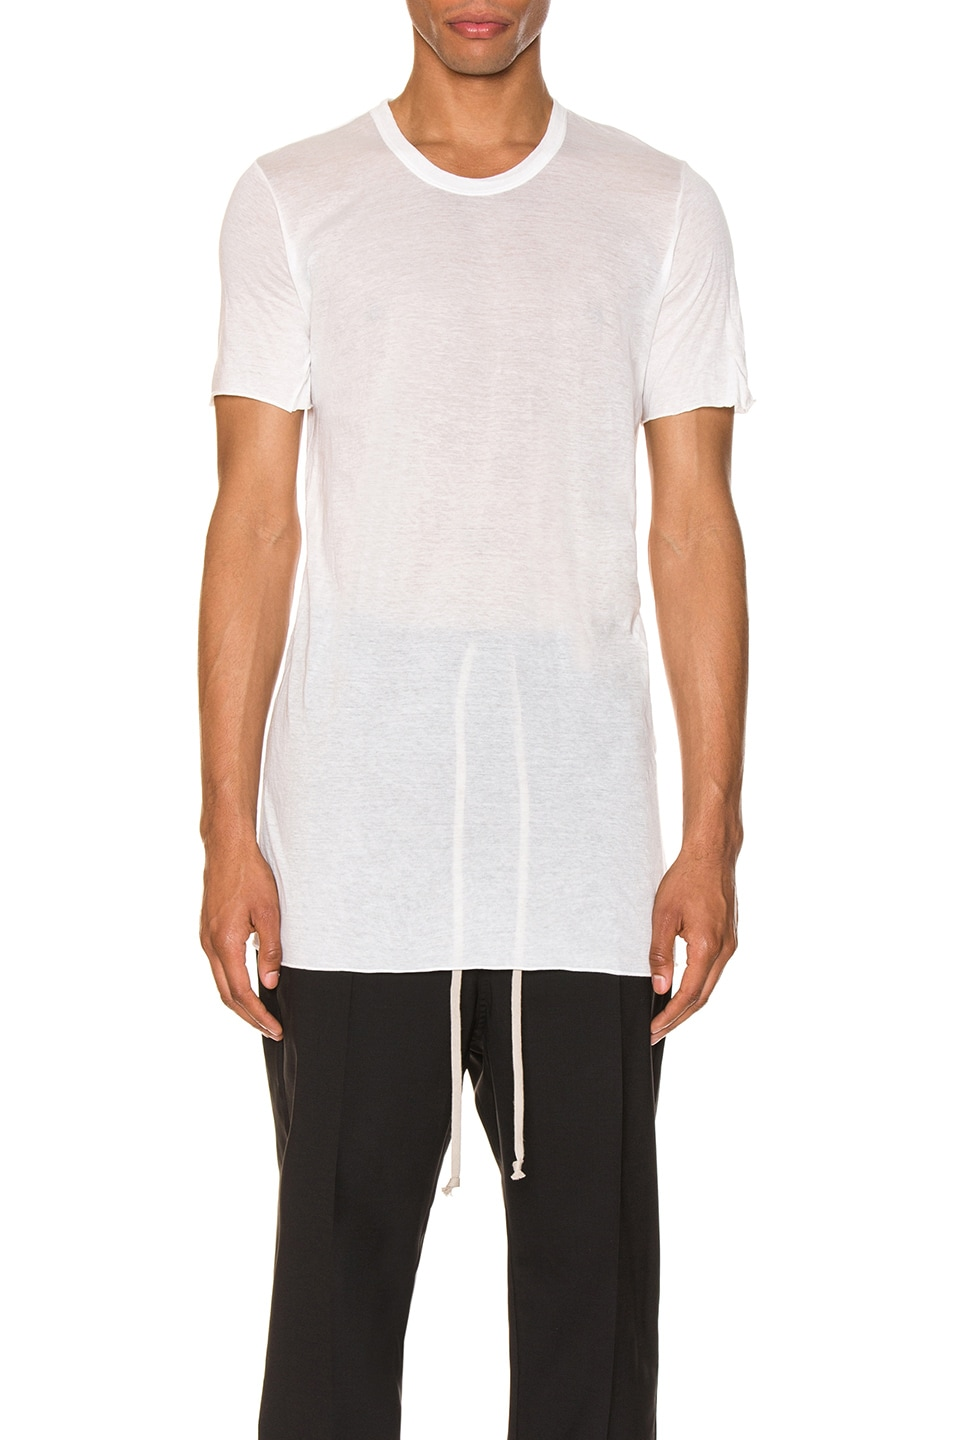 Image 1 of Rick Owens Basic Tee in Milk